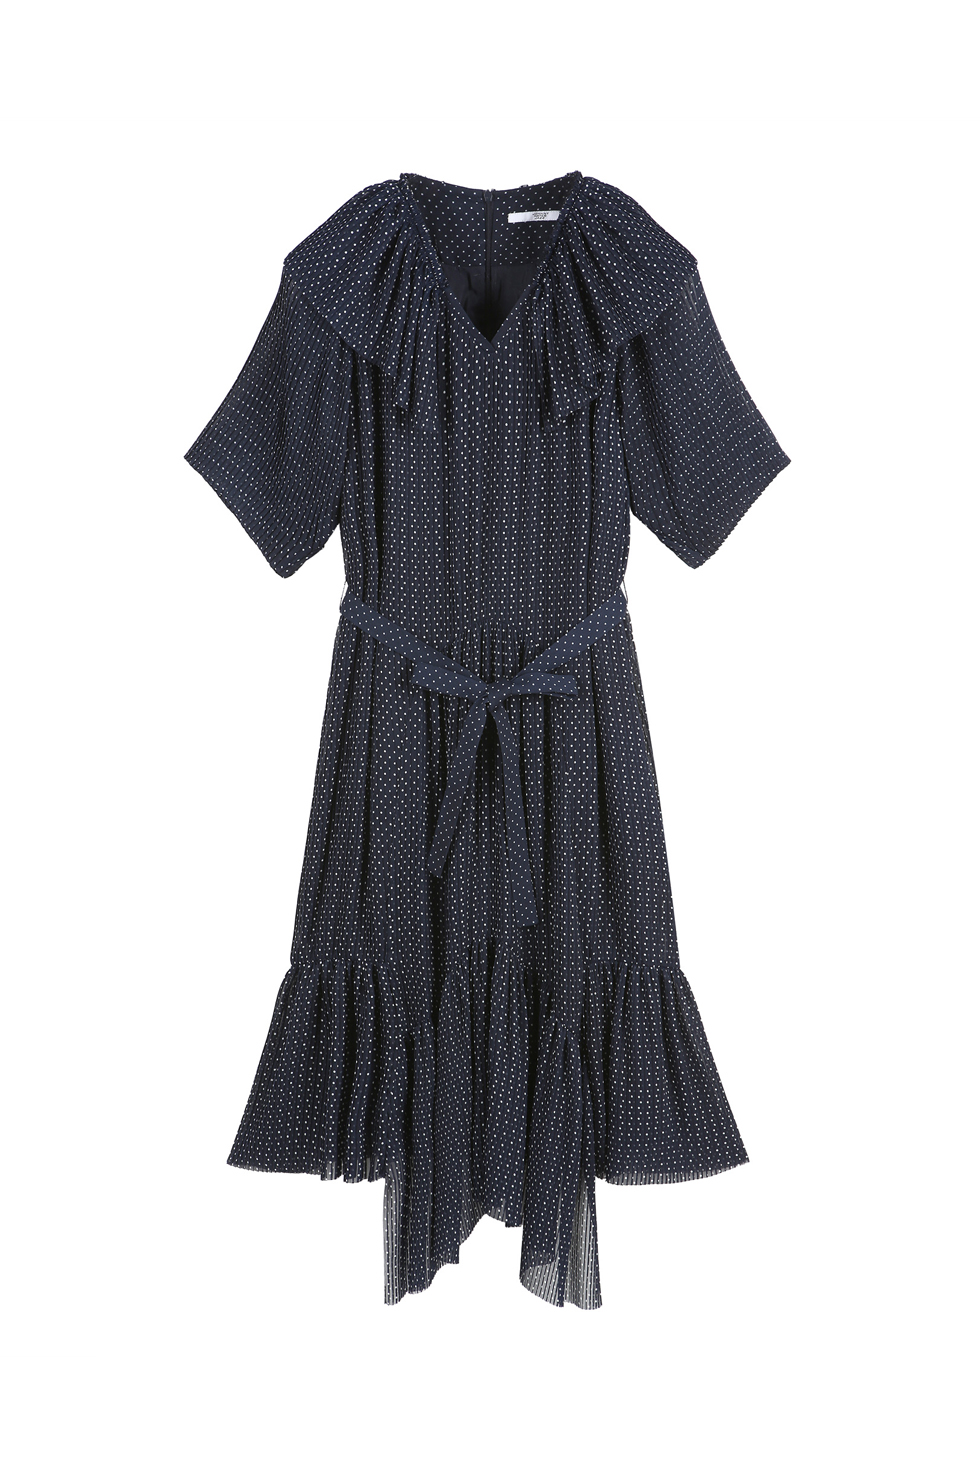 UNBALANCED PLEATS DRESS - NAVY